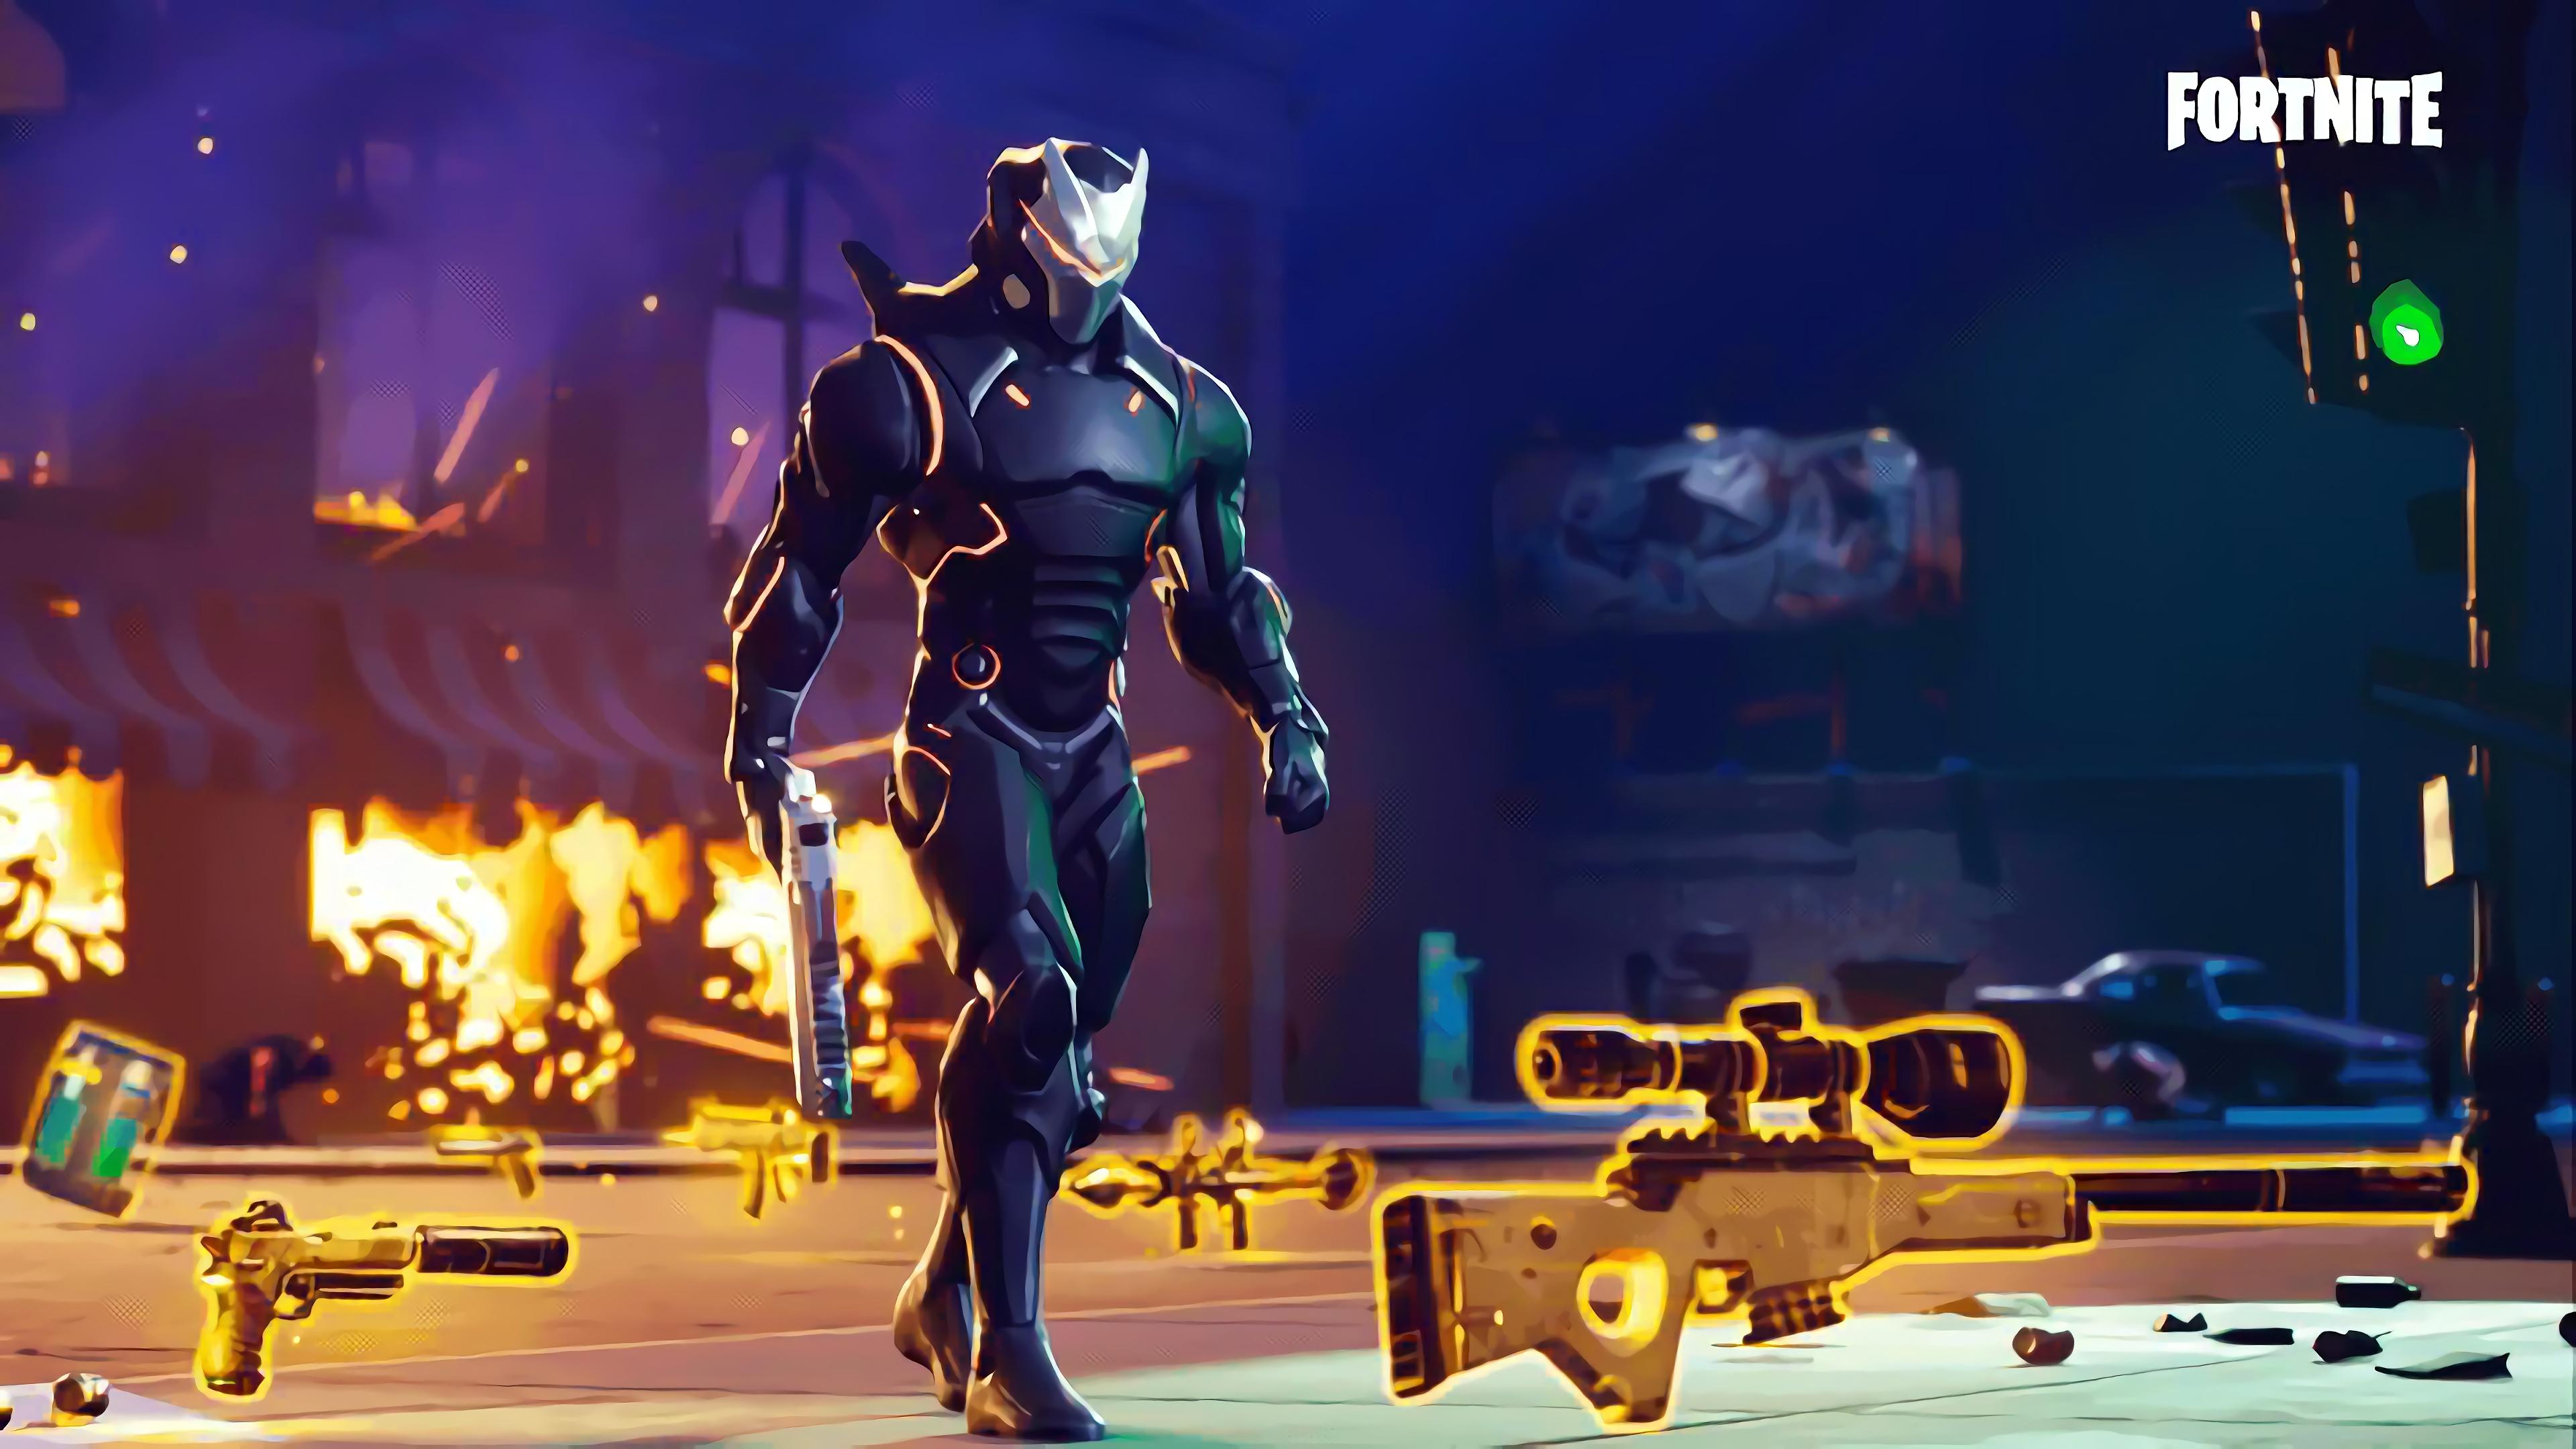 Fortnite backgrounds 60